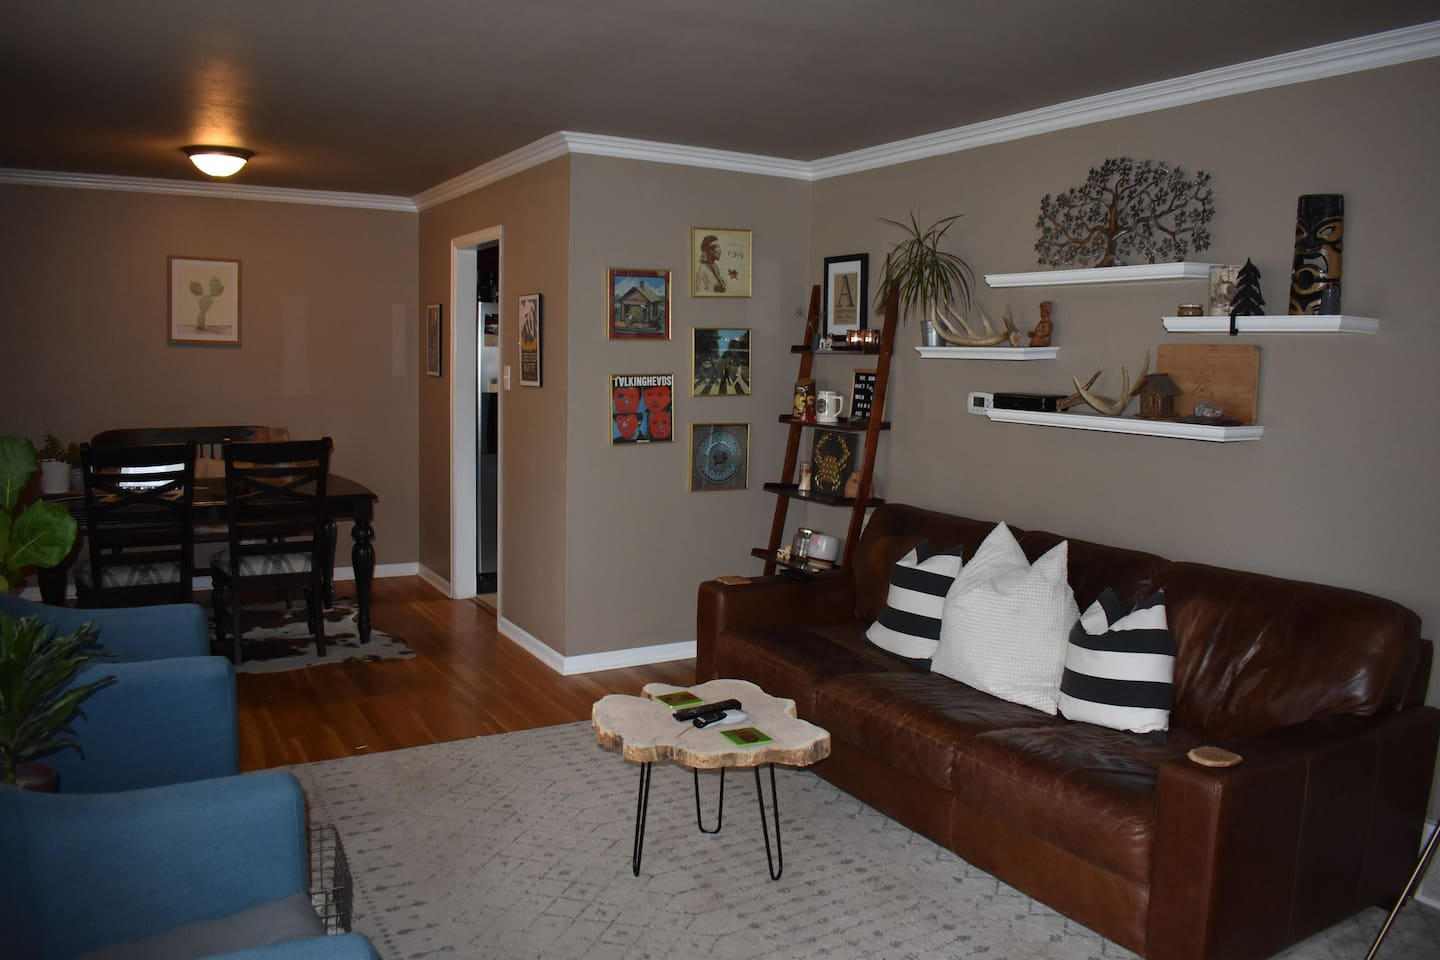 The upstairs dining and living rooms, with functional dining space, cozy couch seating and a TV.